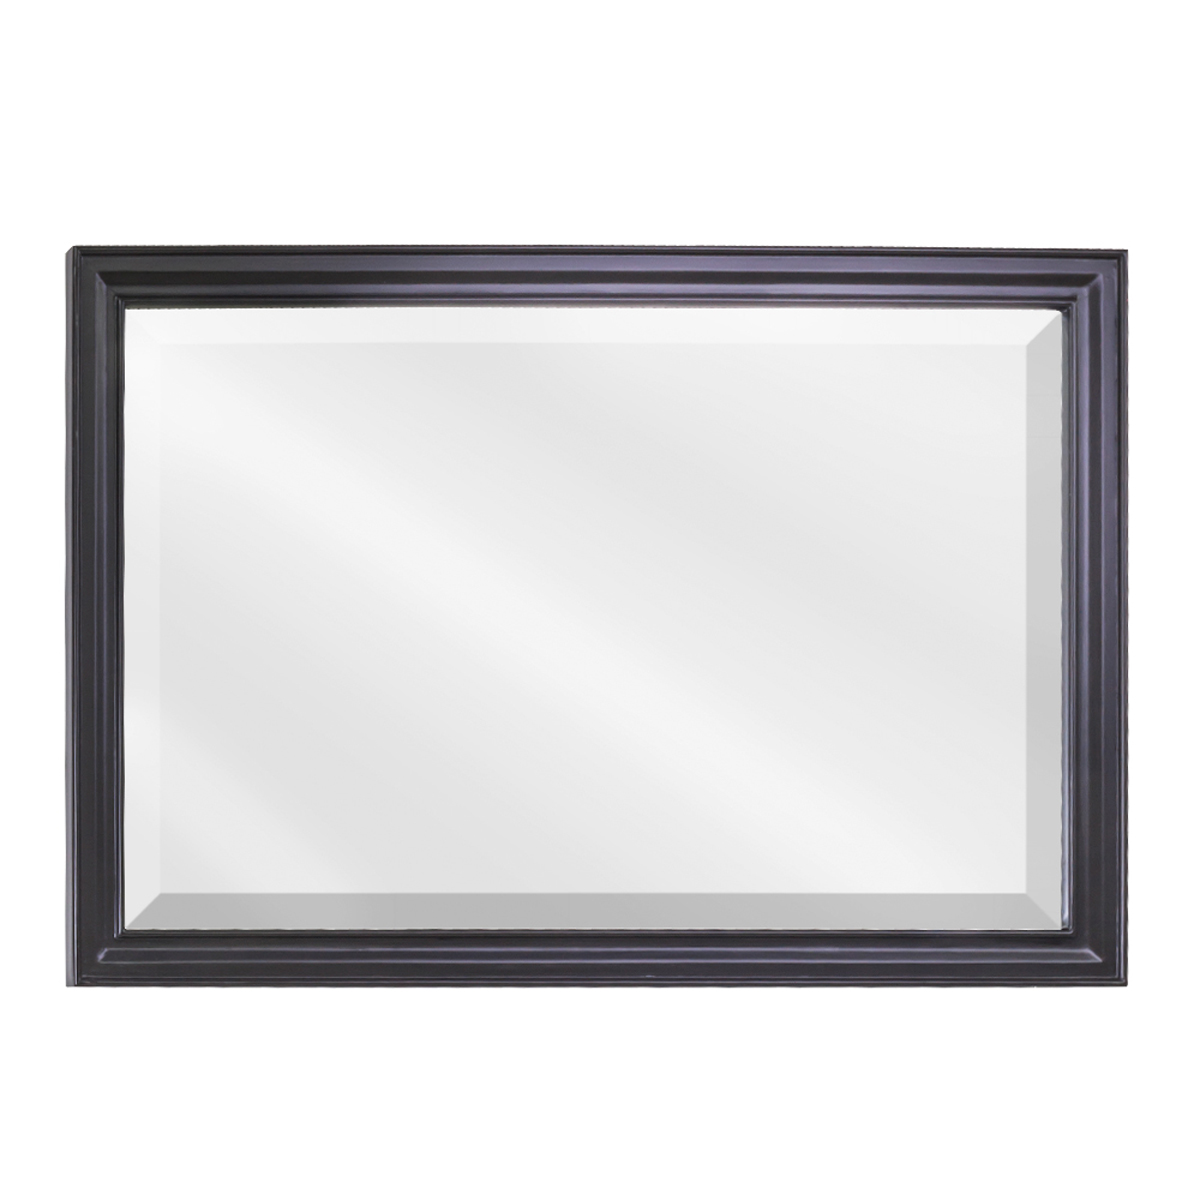 Optional Large Mirror